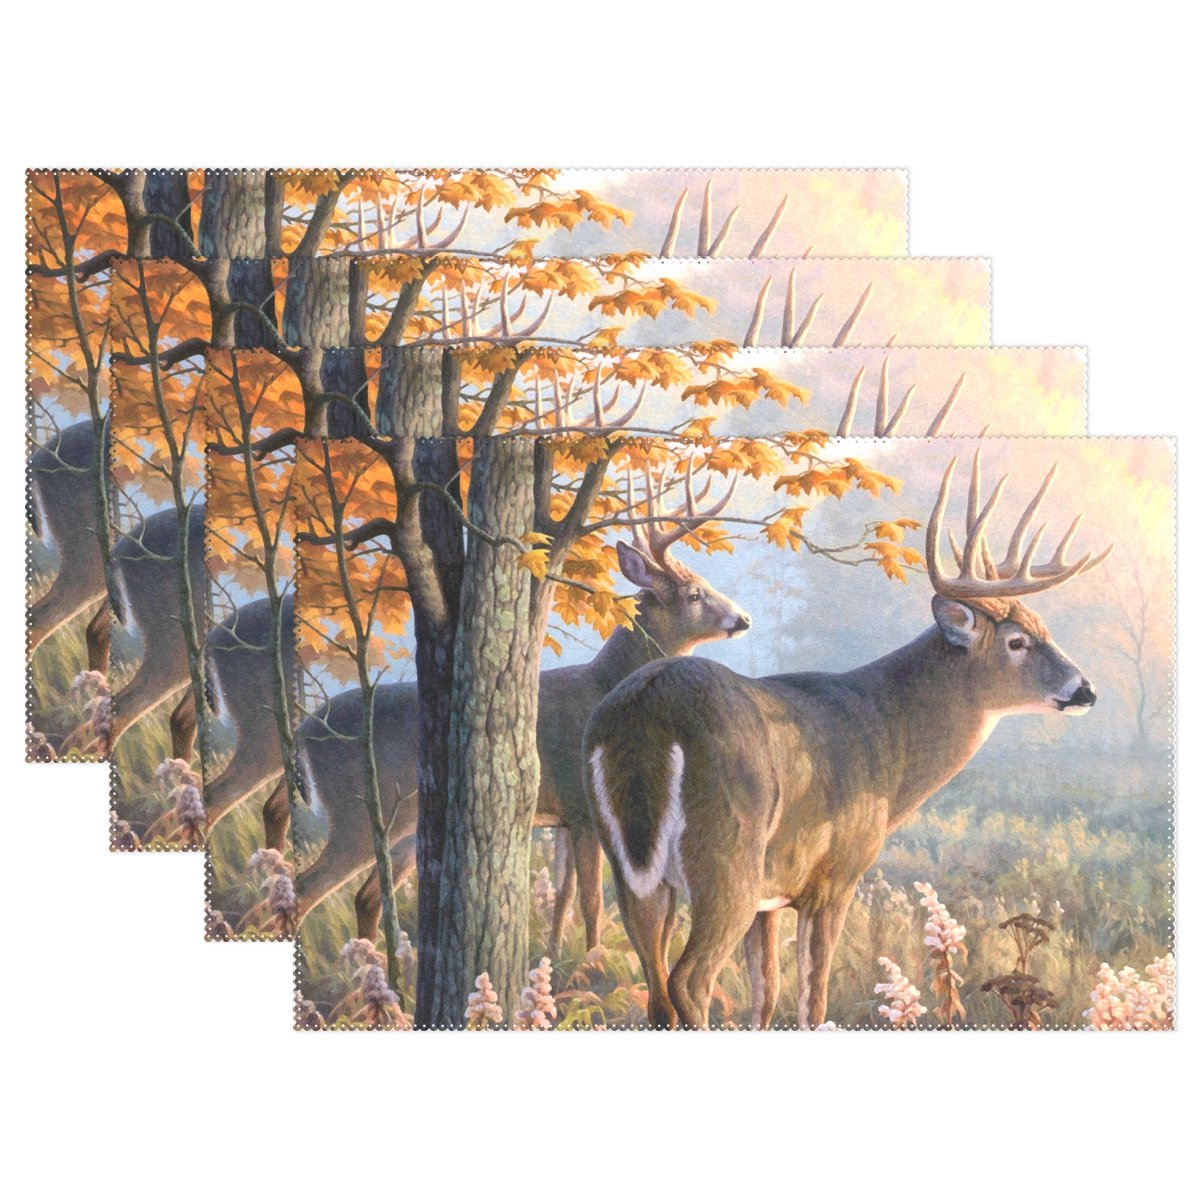 Naanle Animal Placemats Set of 4, Deer in Autumn Forest Heat-Resistant Washable Table Place Mats for Kitchen Dining Table Decoration